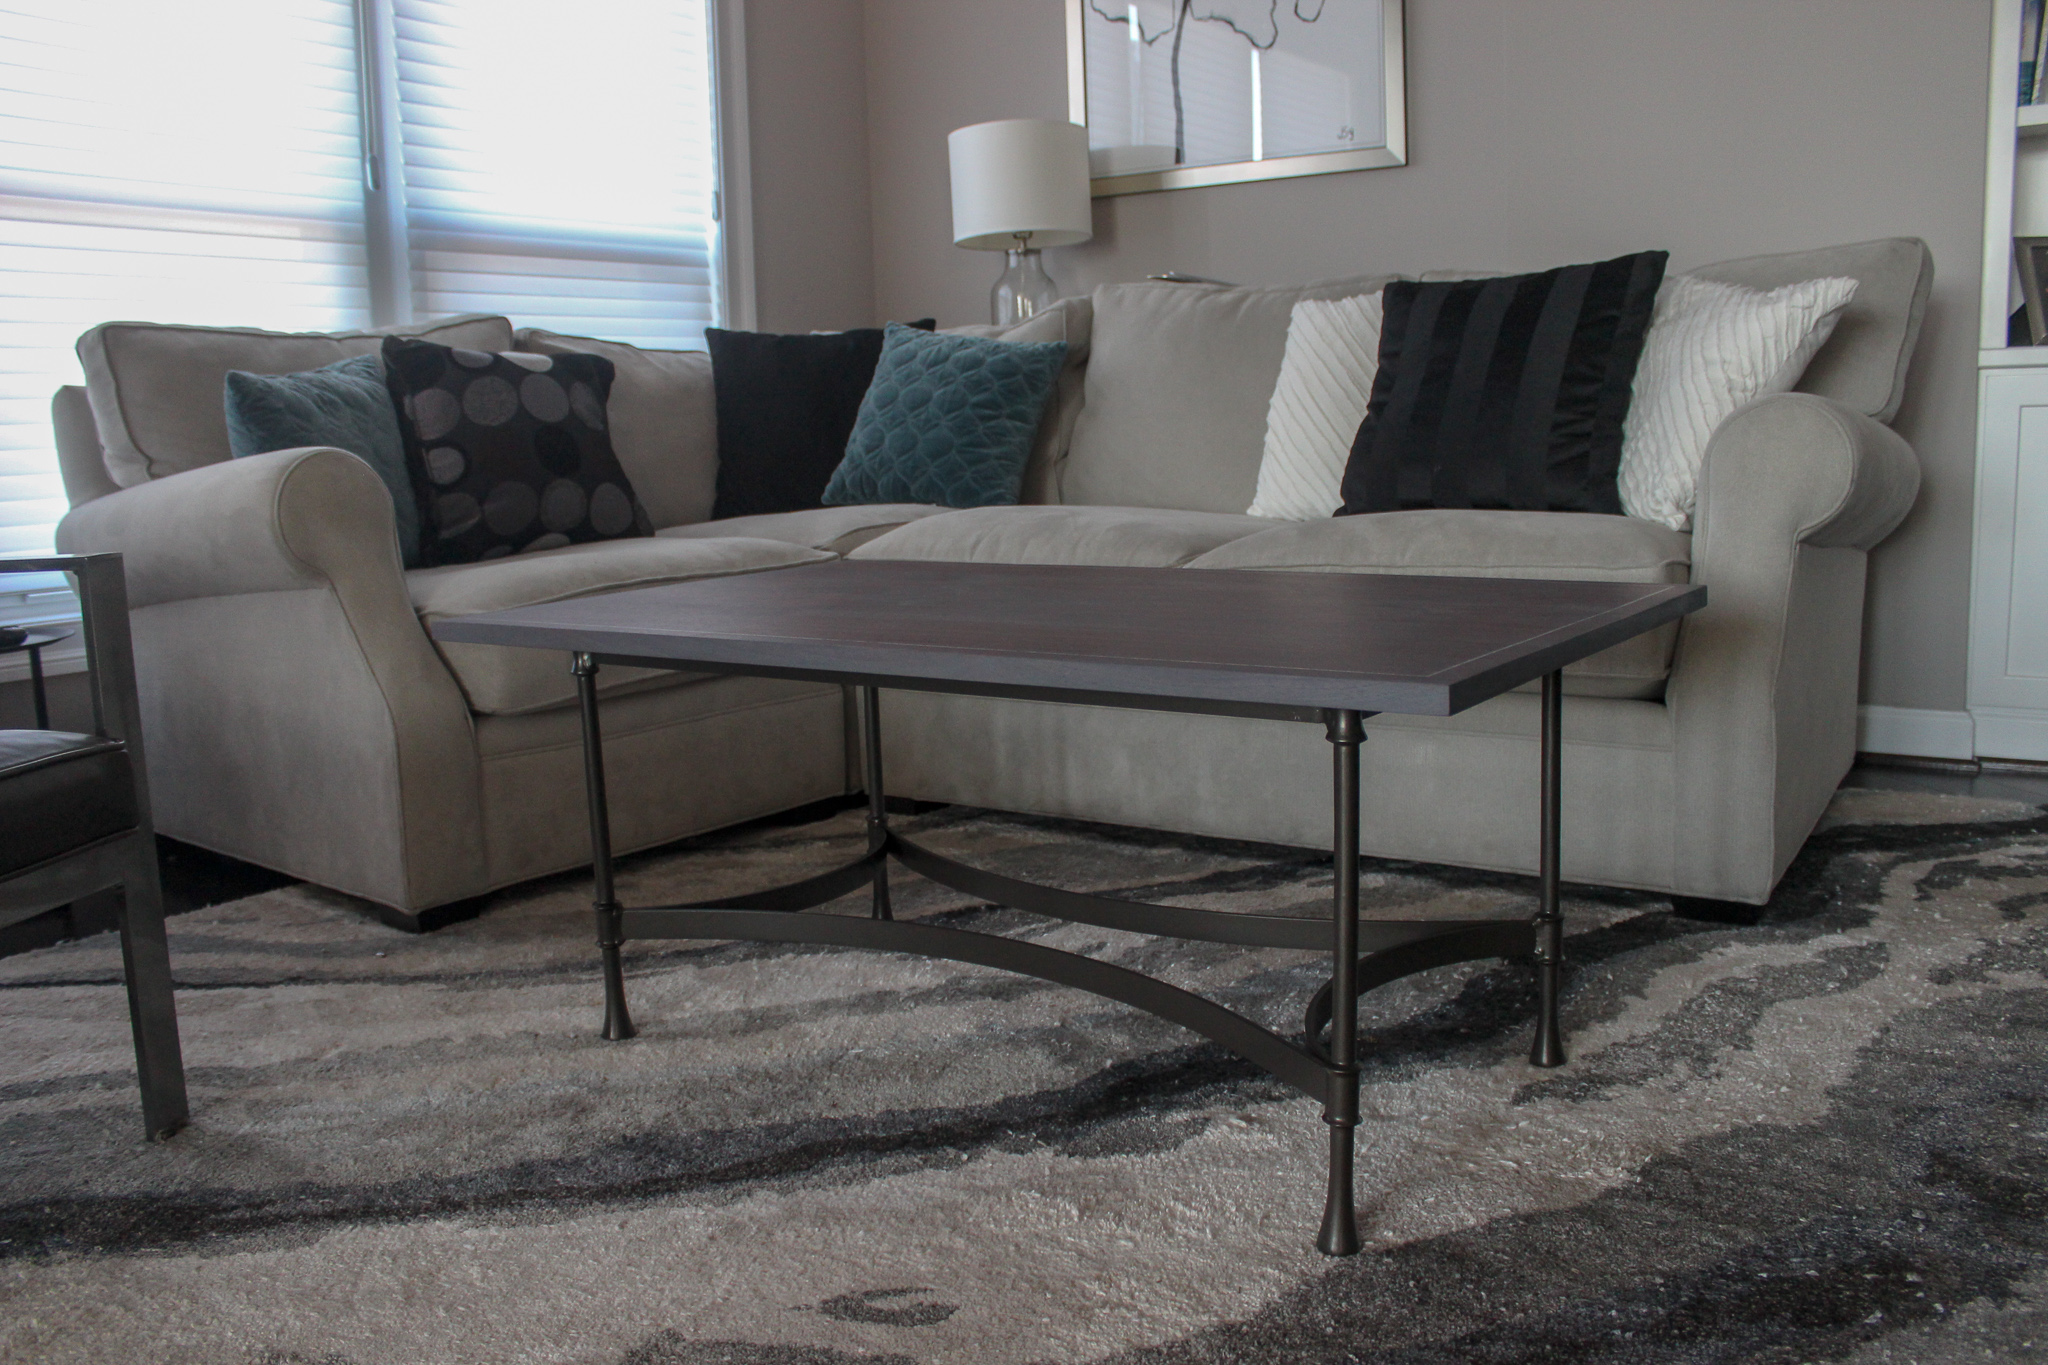 custom walnut tabletop with mother of pearl inlay mid century modern furniture Sallie Plumley Studio Richmond Virginia Sally Plumley Custom Woodworking and Furniture Design